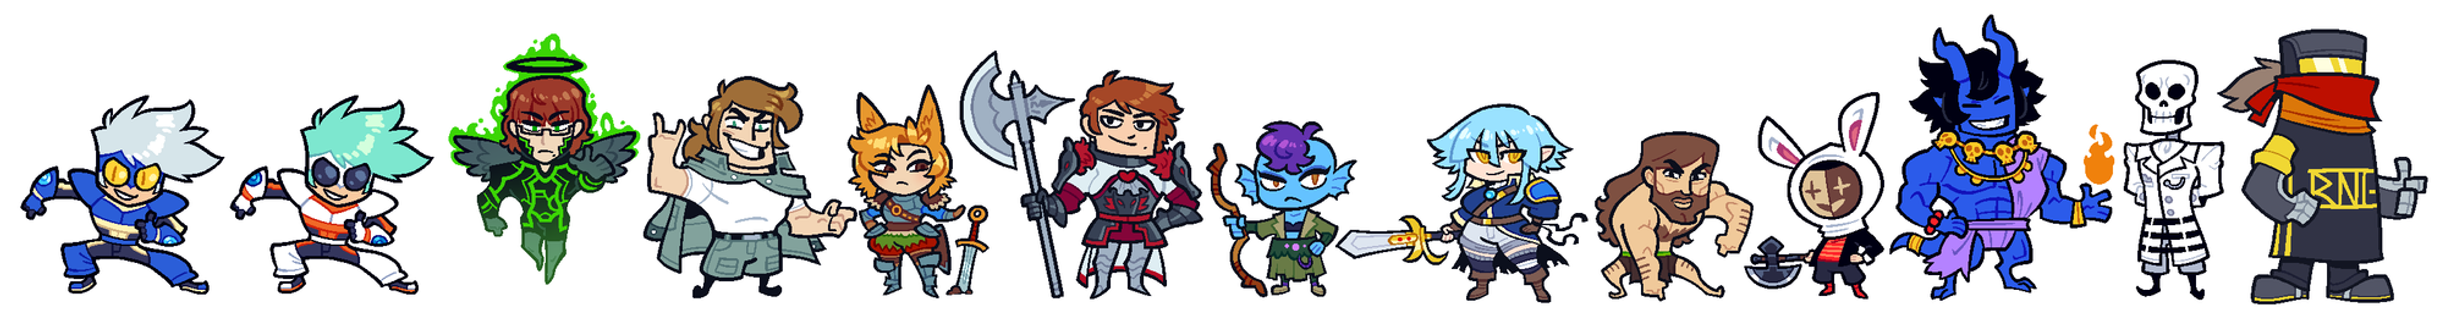 COMMISSION: DnD Group 7 by Cubesona